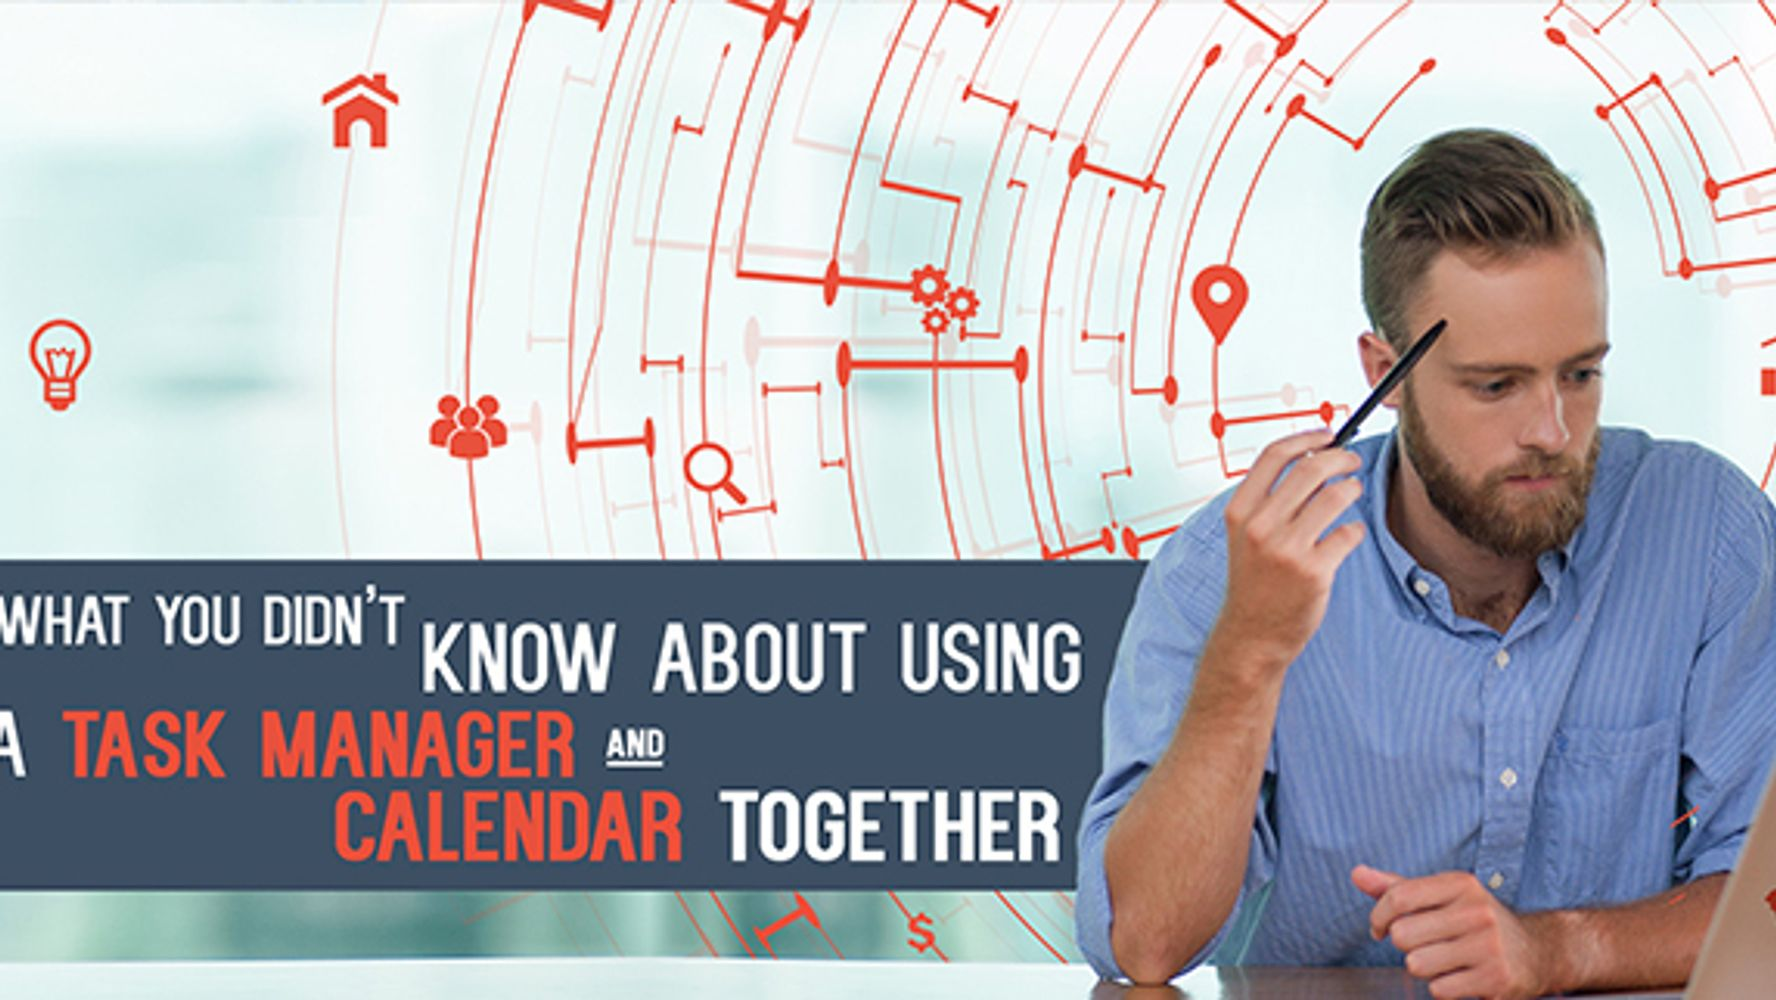 What you didn't know about using a Task Manager and Calendar Together